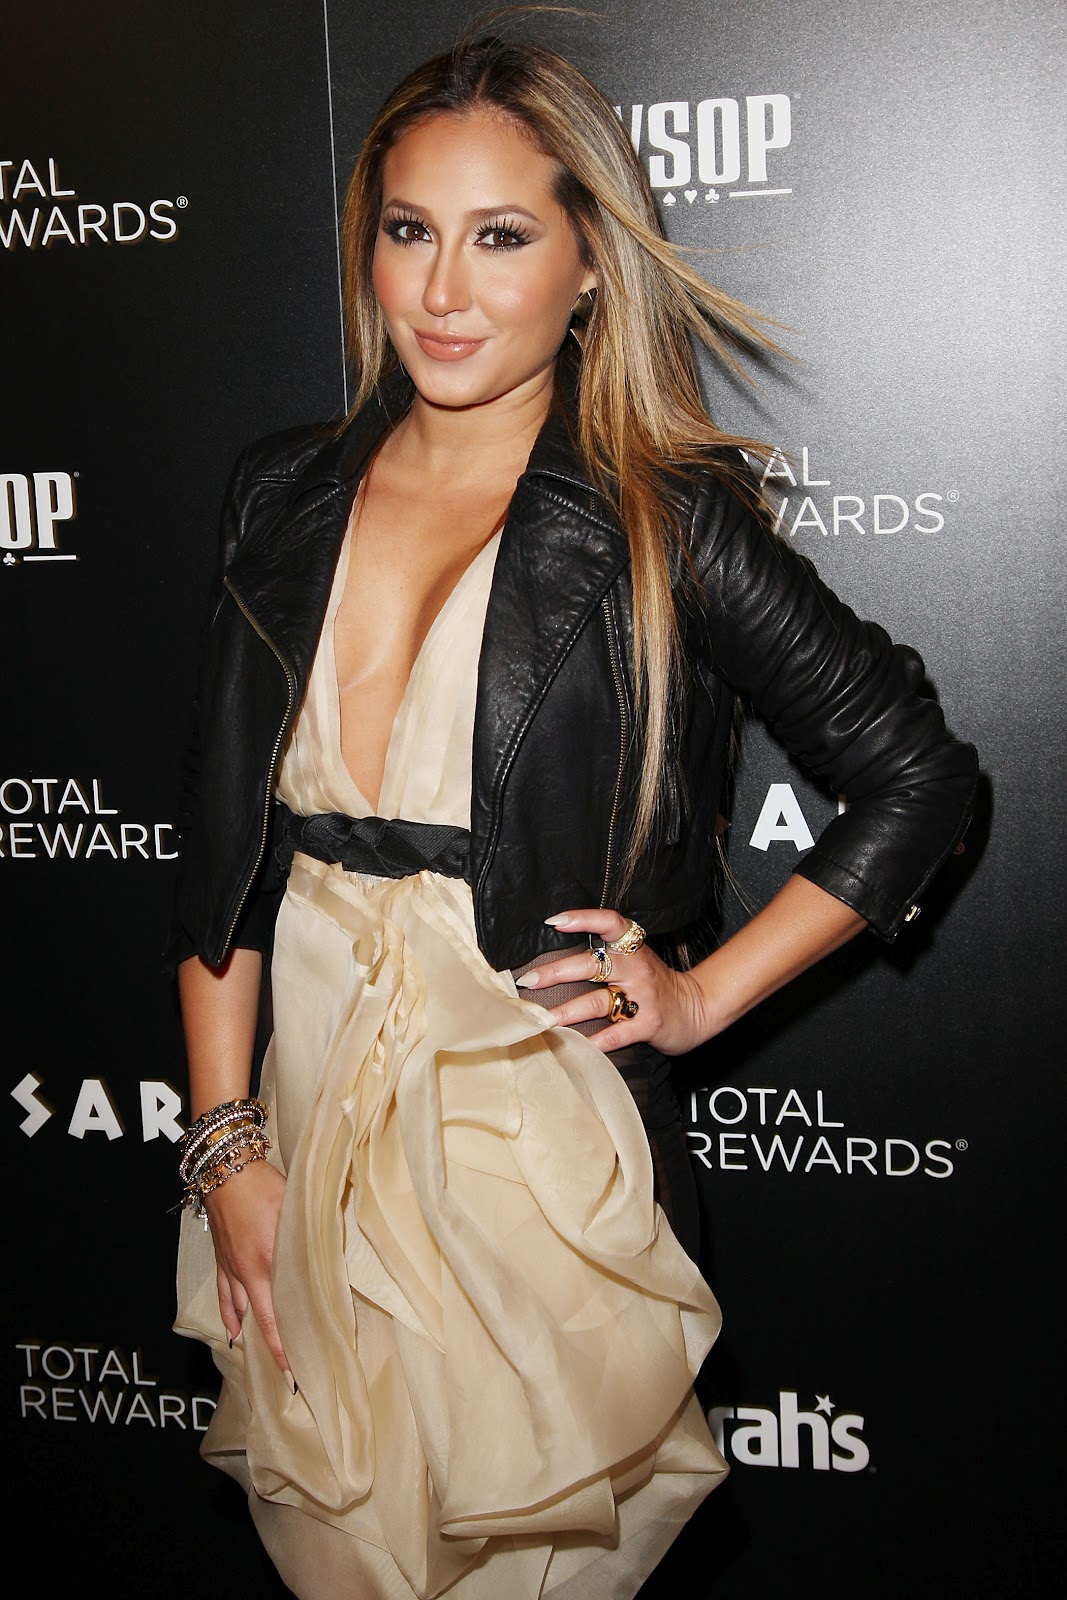 Adrienne bailon uncensored naked pics #13